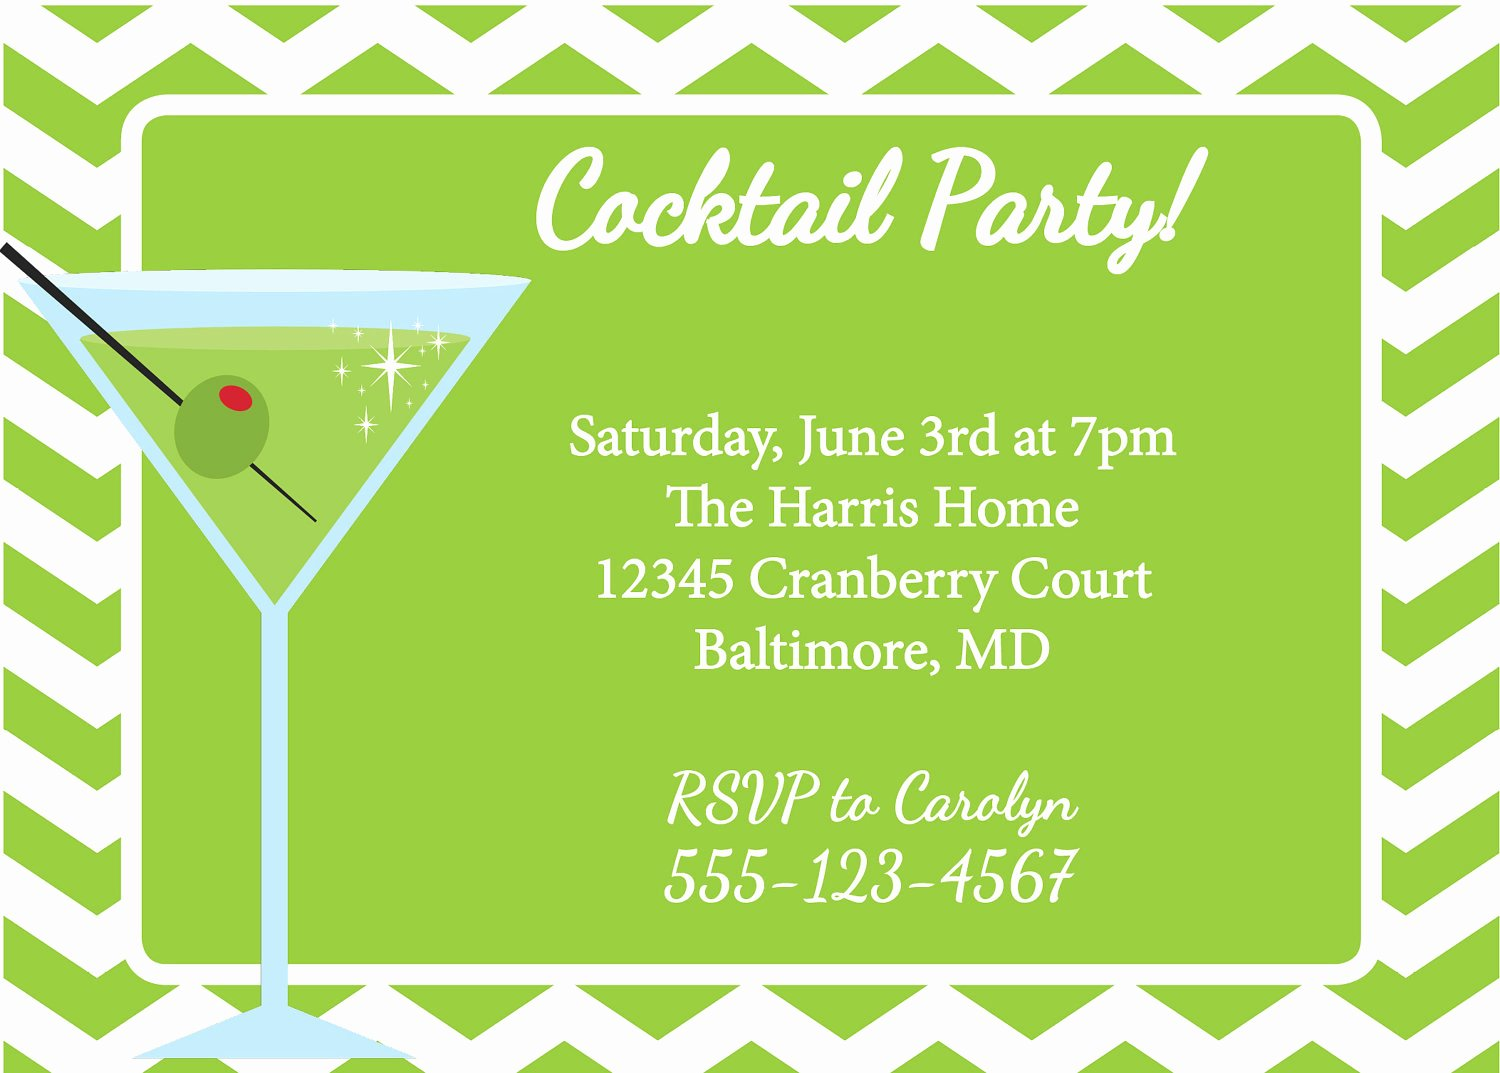 Cocktail Party Invitation Template New Cocktail Party Invite Templates